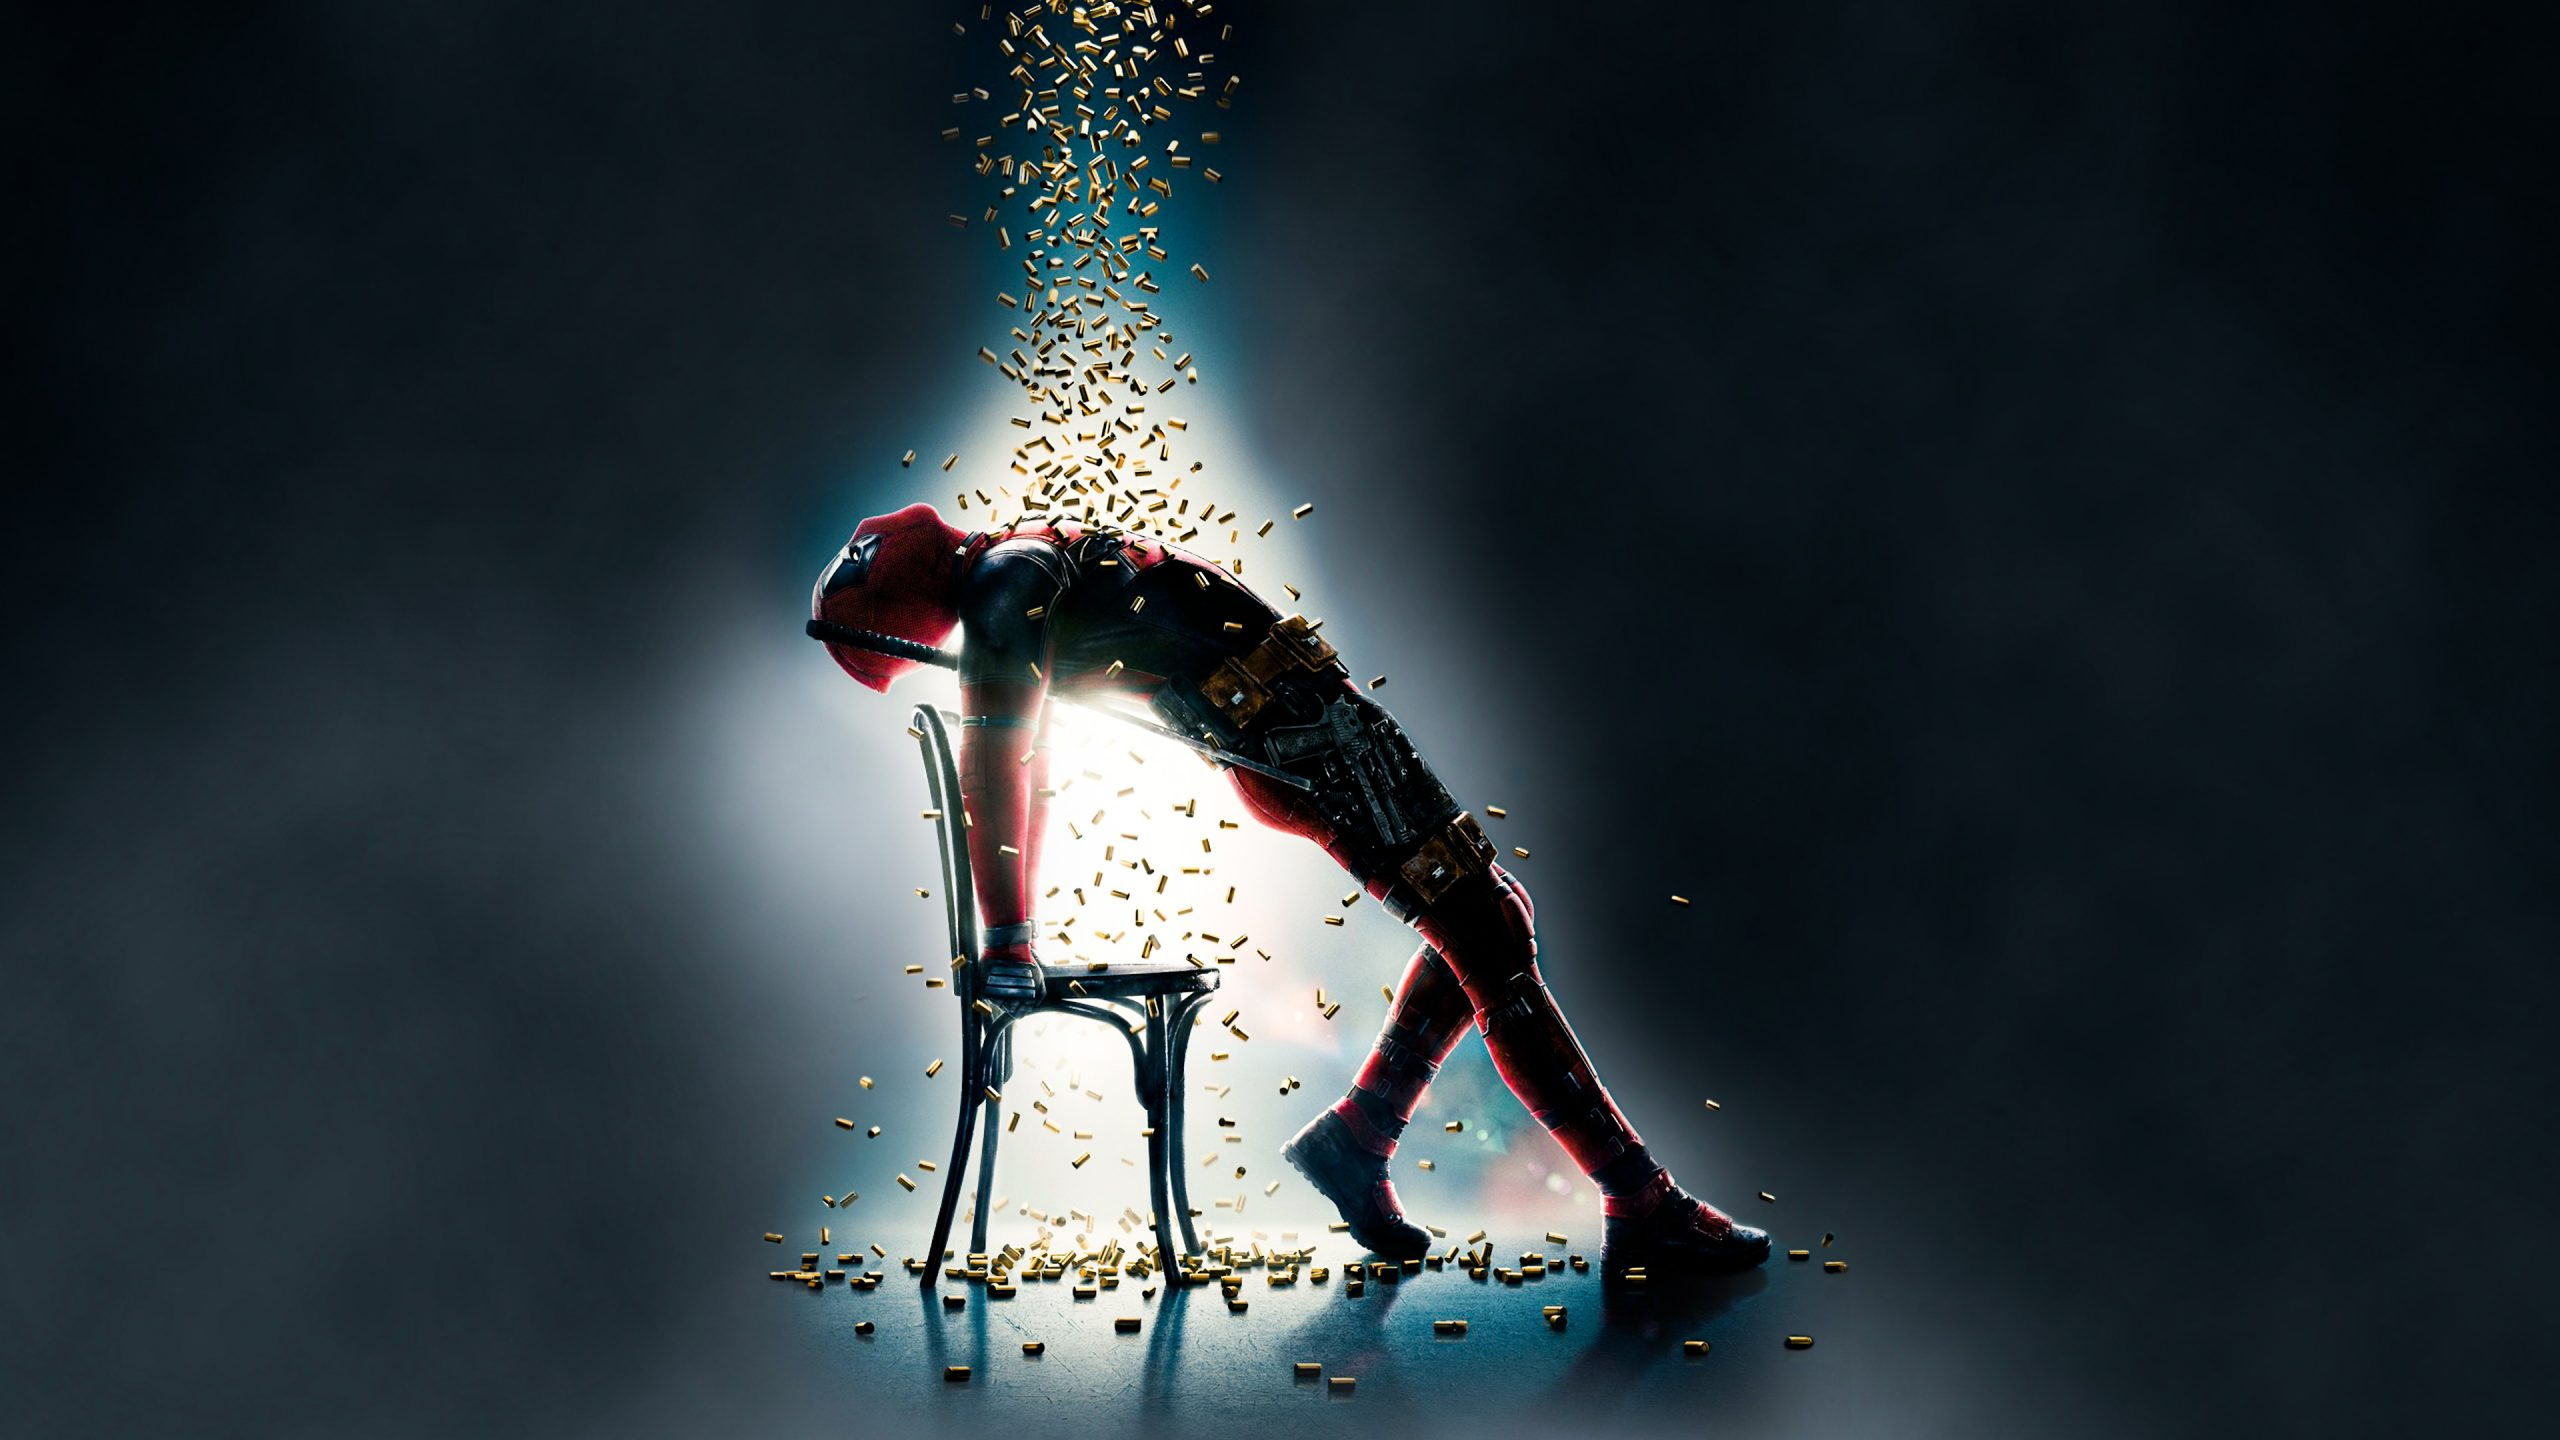 Hd Wallpapers For Samsung Galaxy S6 Edge Wallpapers Part 2: Deadpool 2 Movie Bullet Poster 4K Wallpaper